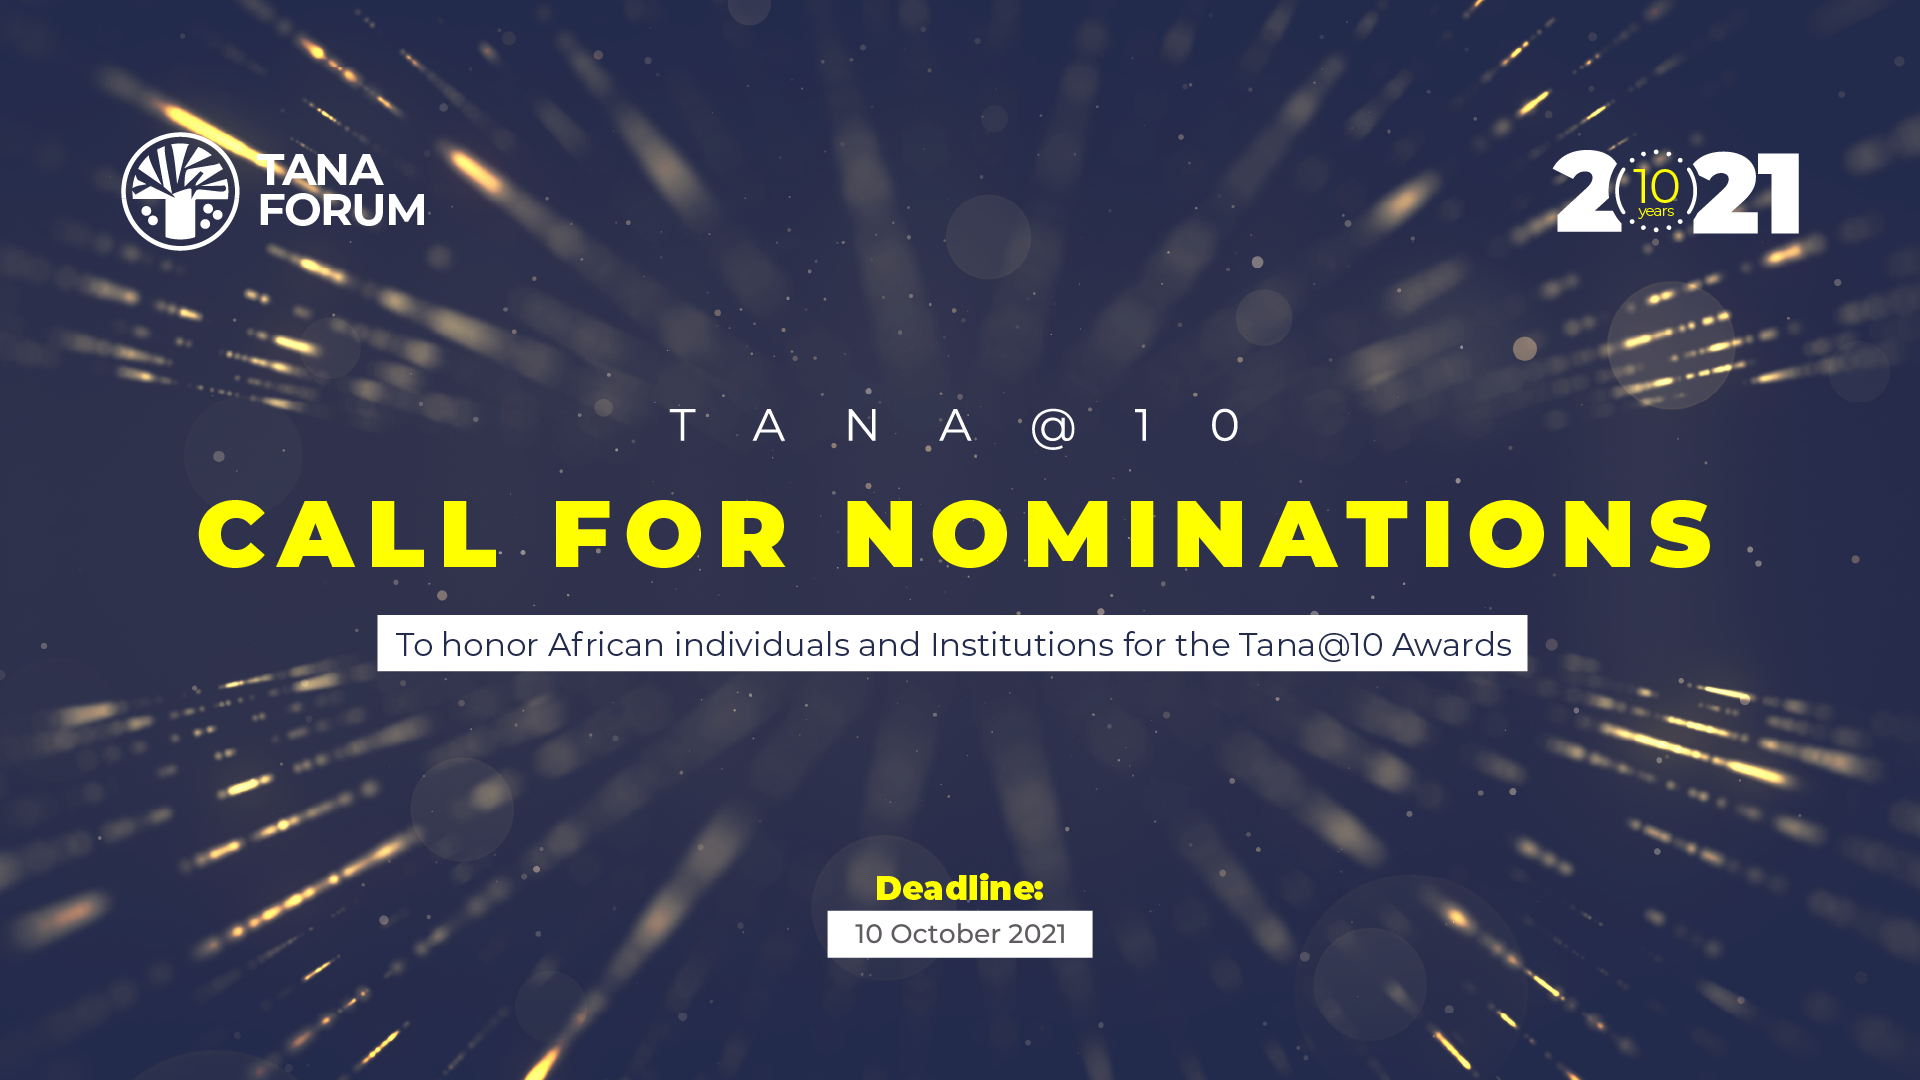 Call for Nominations to Honor African Individuals and Institutions for the Tana @10 Awards